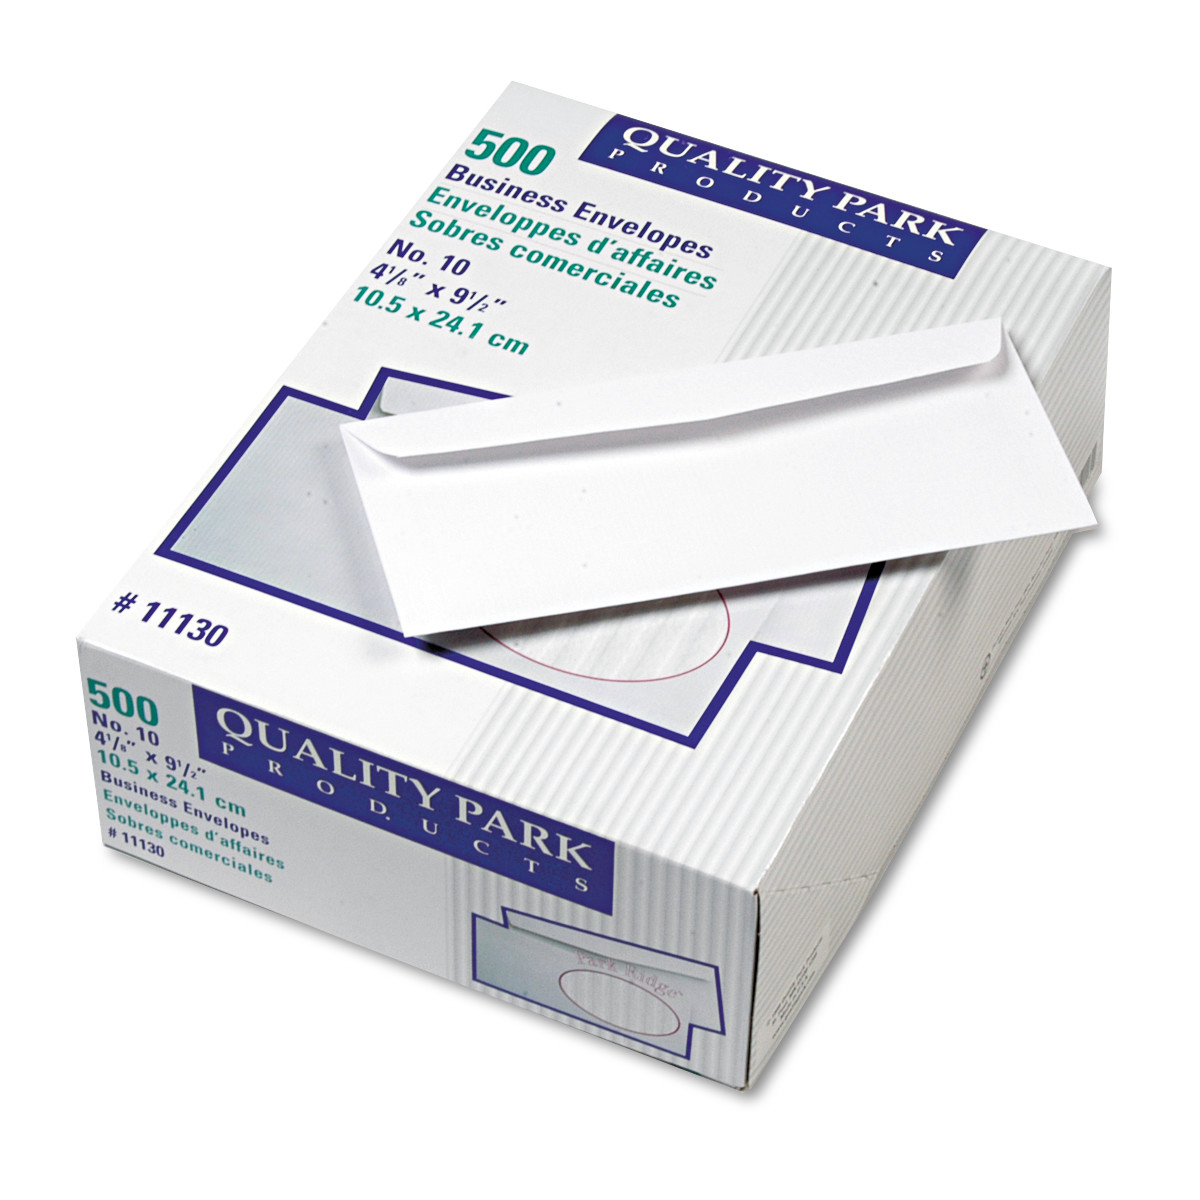 Quality Park Park Ridge Embossed Executive Envelope, #10, 4 1/8 x 9 1/2, White, 500/Box -QUA11130